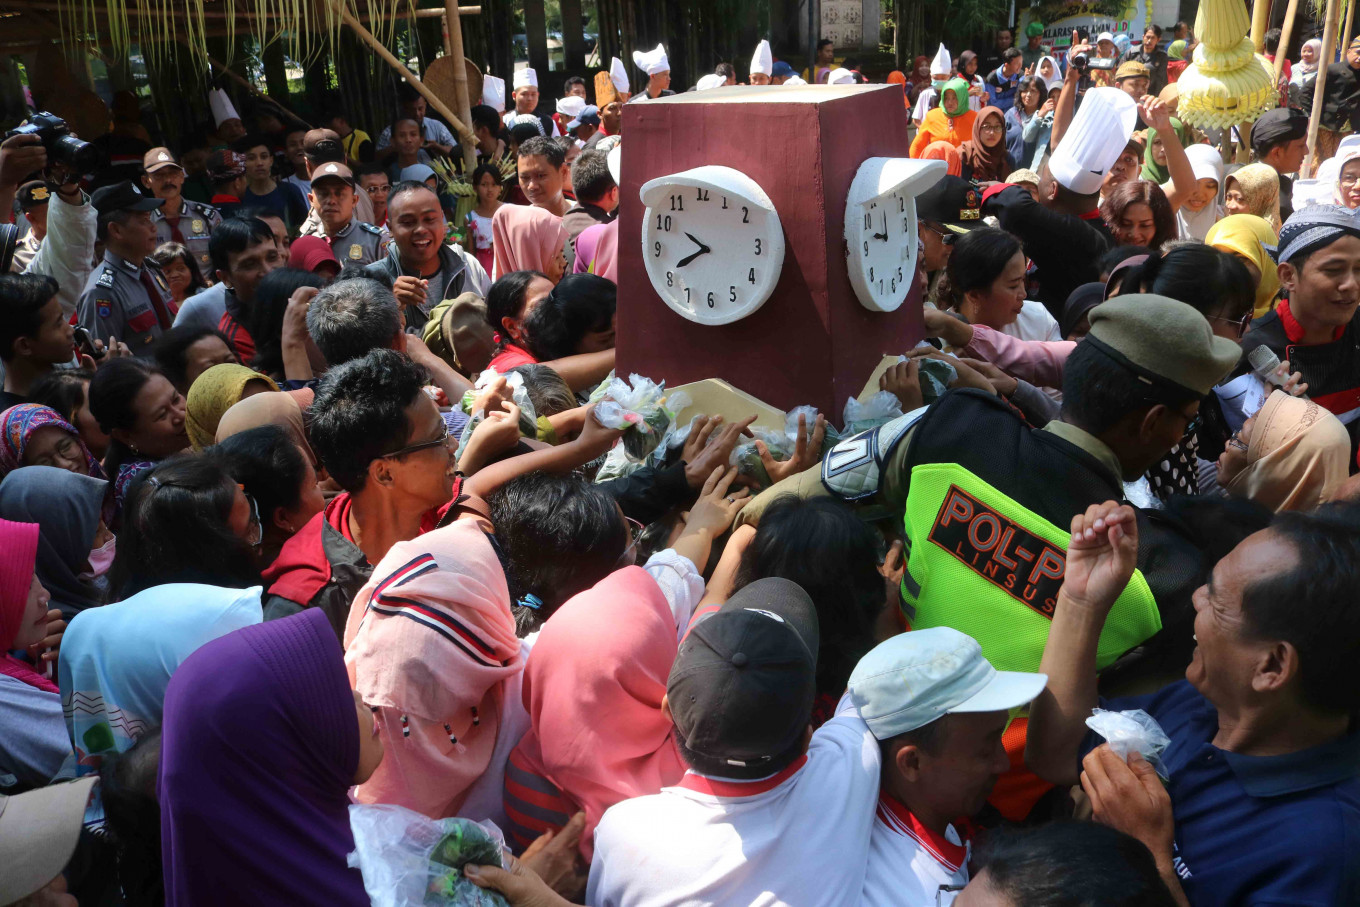 Crunch time: Residents scramble for 1.000 portions of jenang around a replica of Surakarta's clock monument. JP/Maksum Nur Fauzan